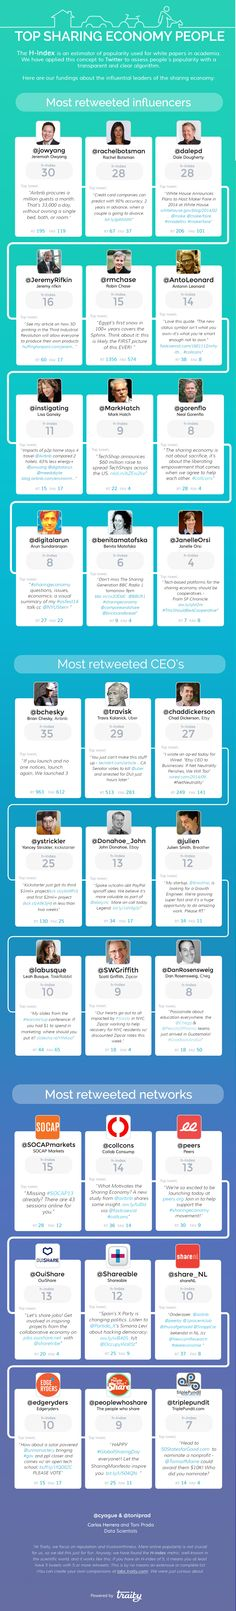 Who to Follow in the Sharing Economy [Infographic]